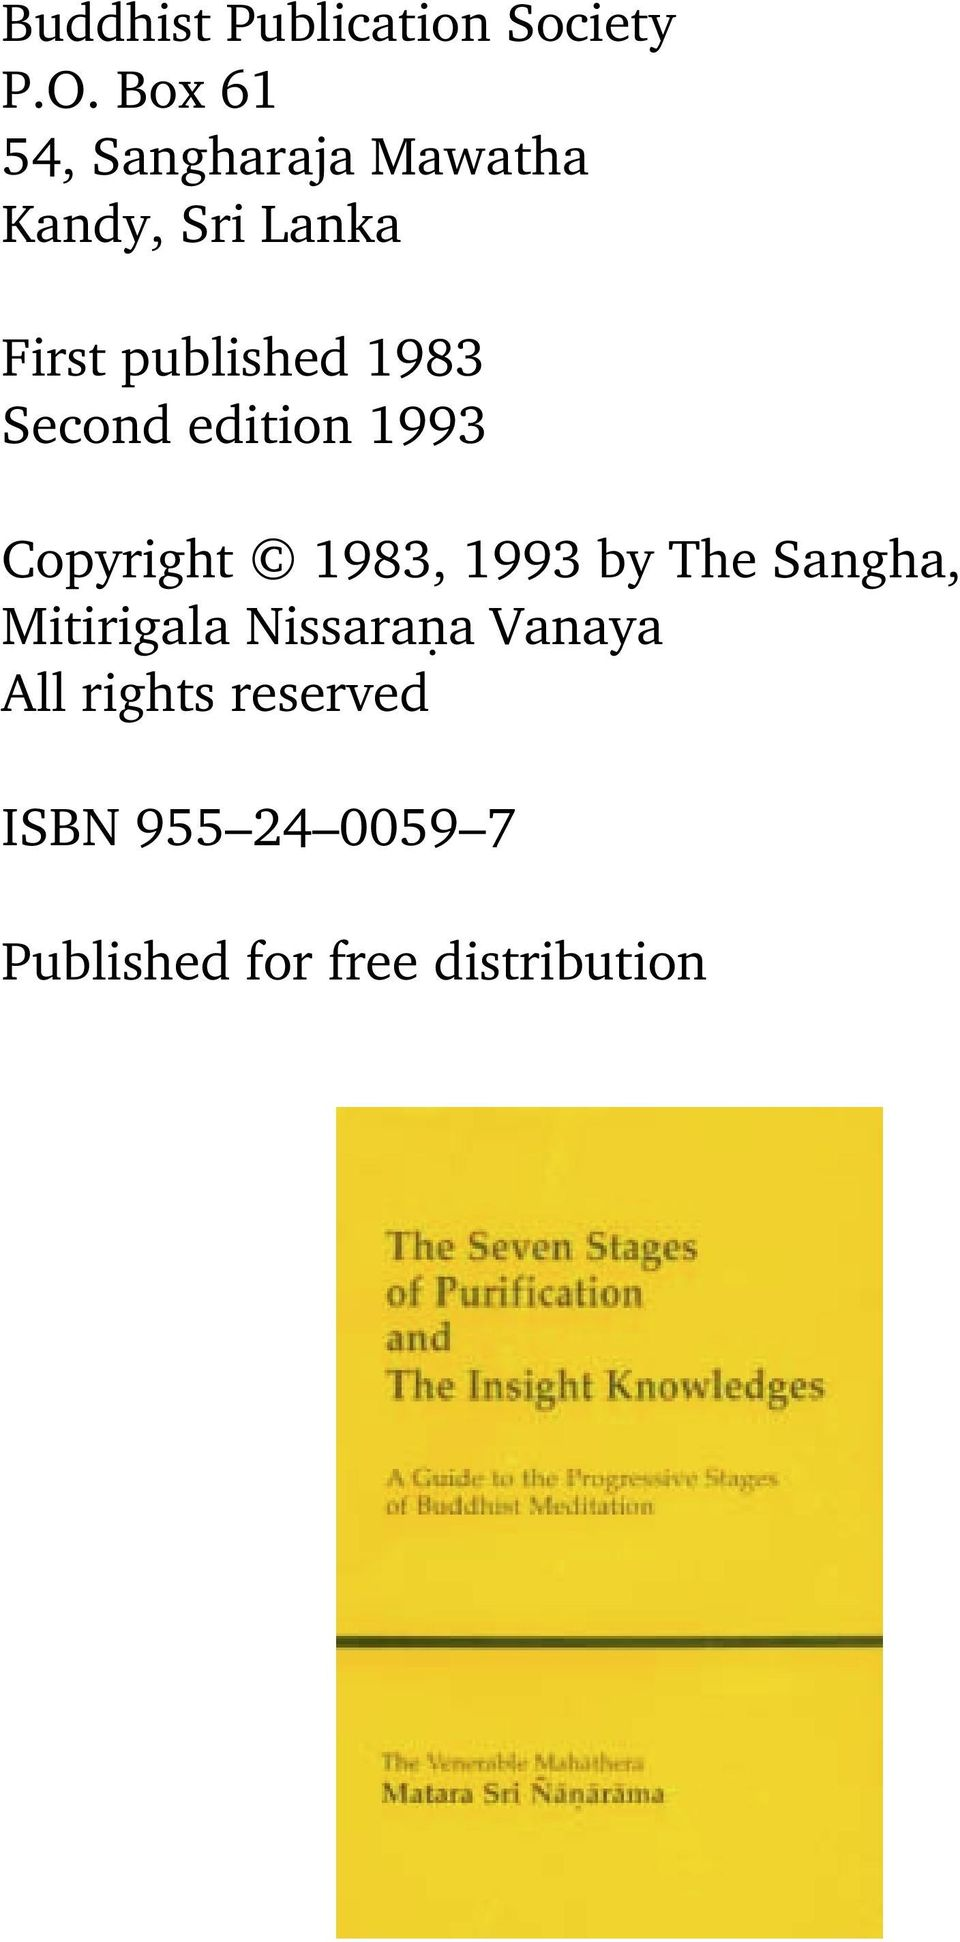 1983 Second edition 1993 Copyright 1983, 1993 by The Sangha,